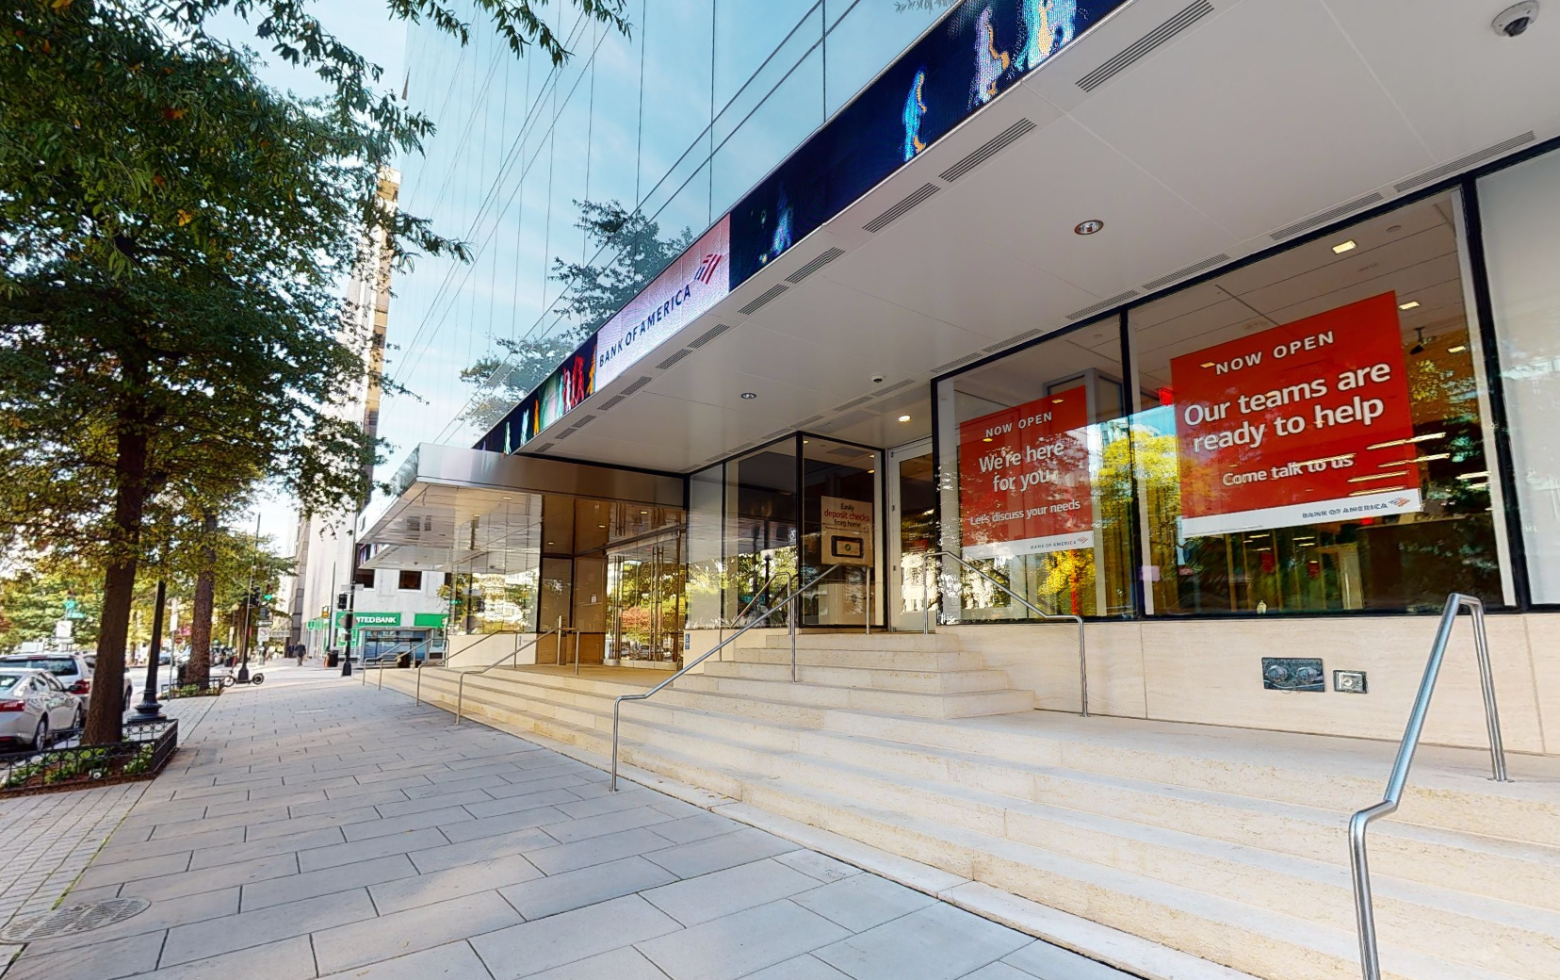 Bank of America financial center with walk-up ATM | 1800 K St NW STE 104, Washington, DC 20006